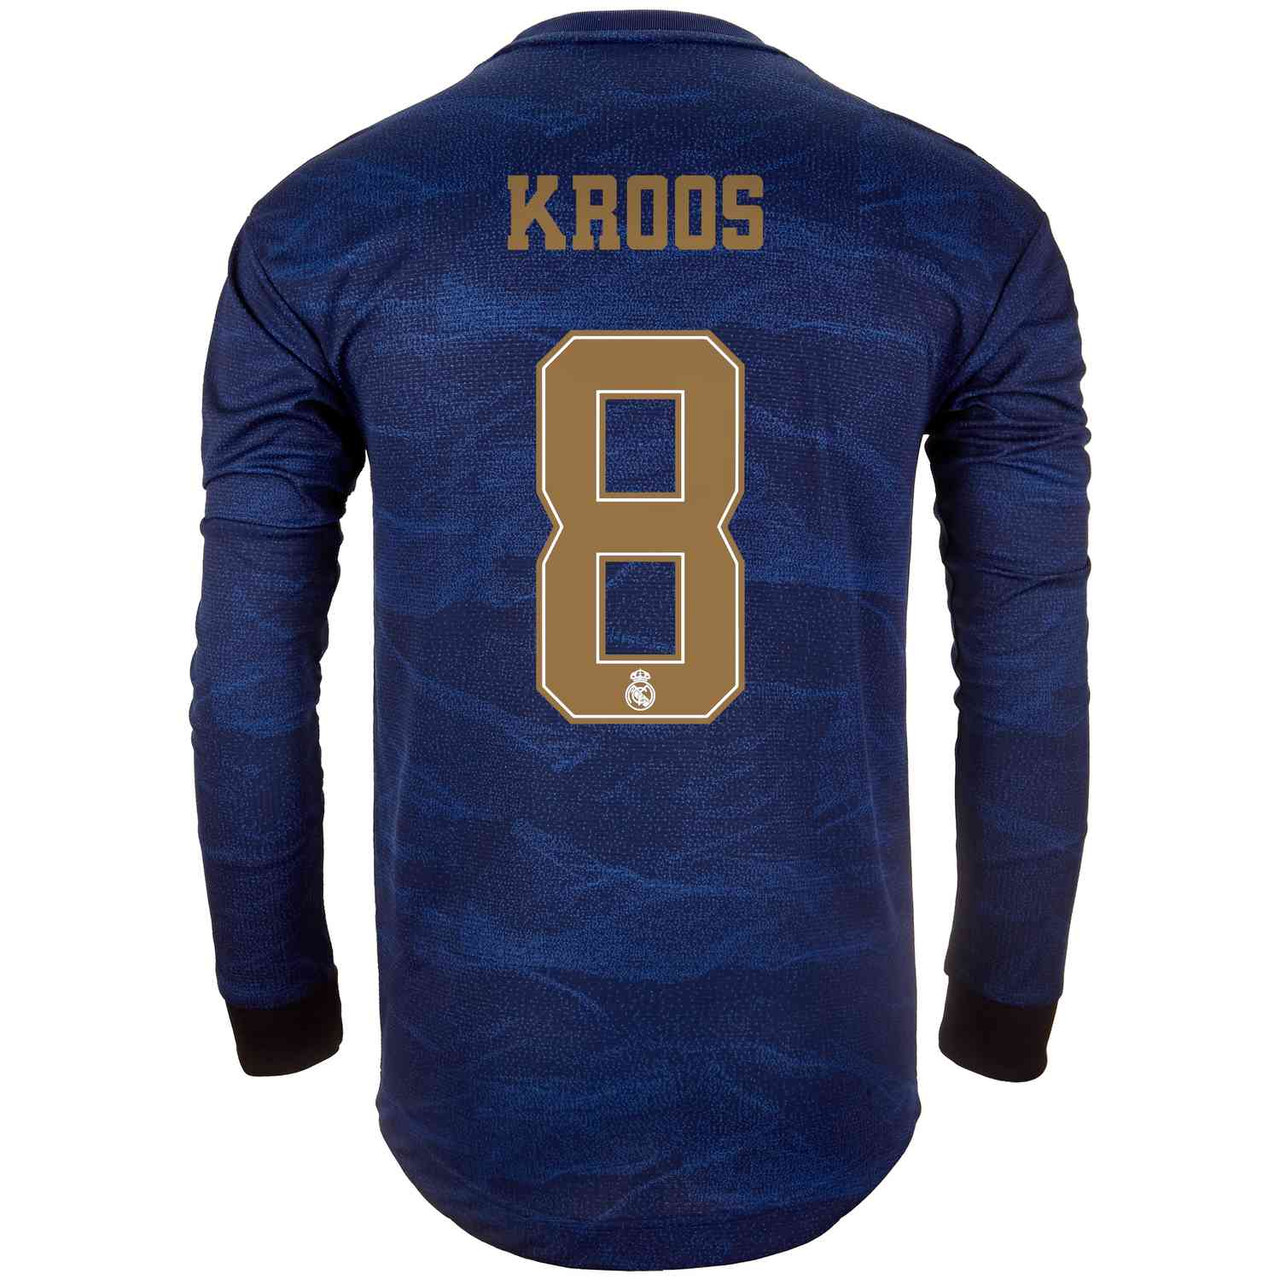 buy popular 23ad0 afd11 ADIDAS REAL MADRID 2020 AWAY AUTHENTIC `KROOS` LS JERSEY